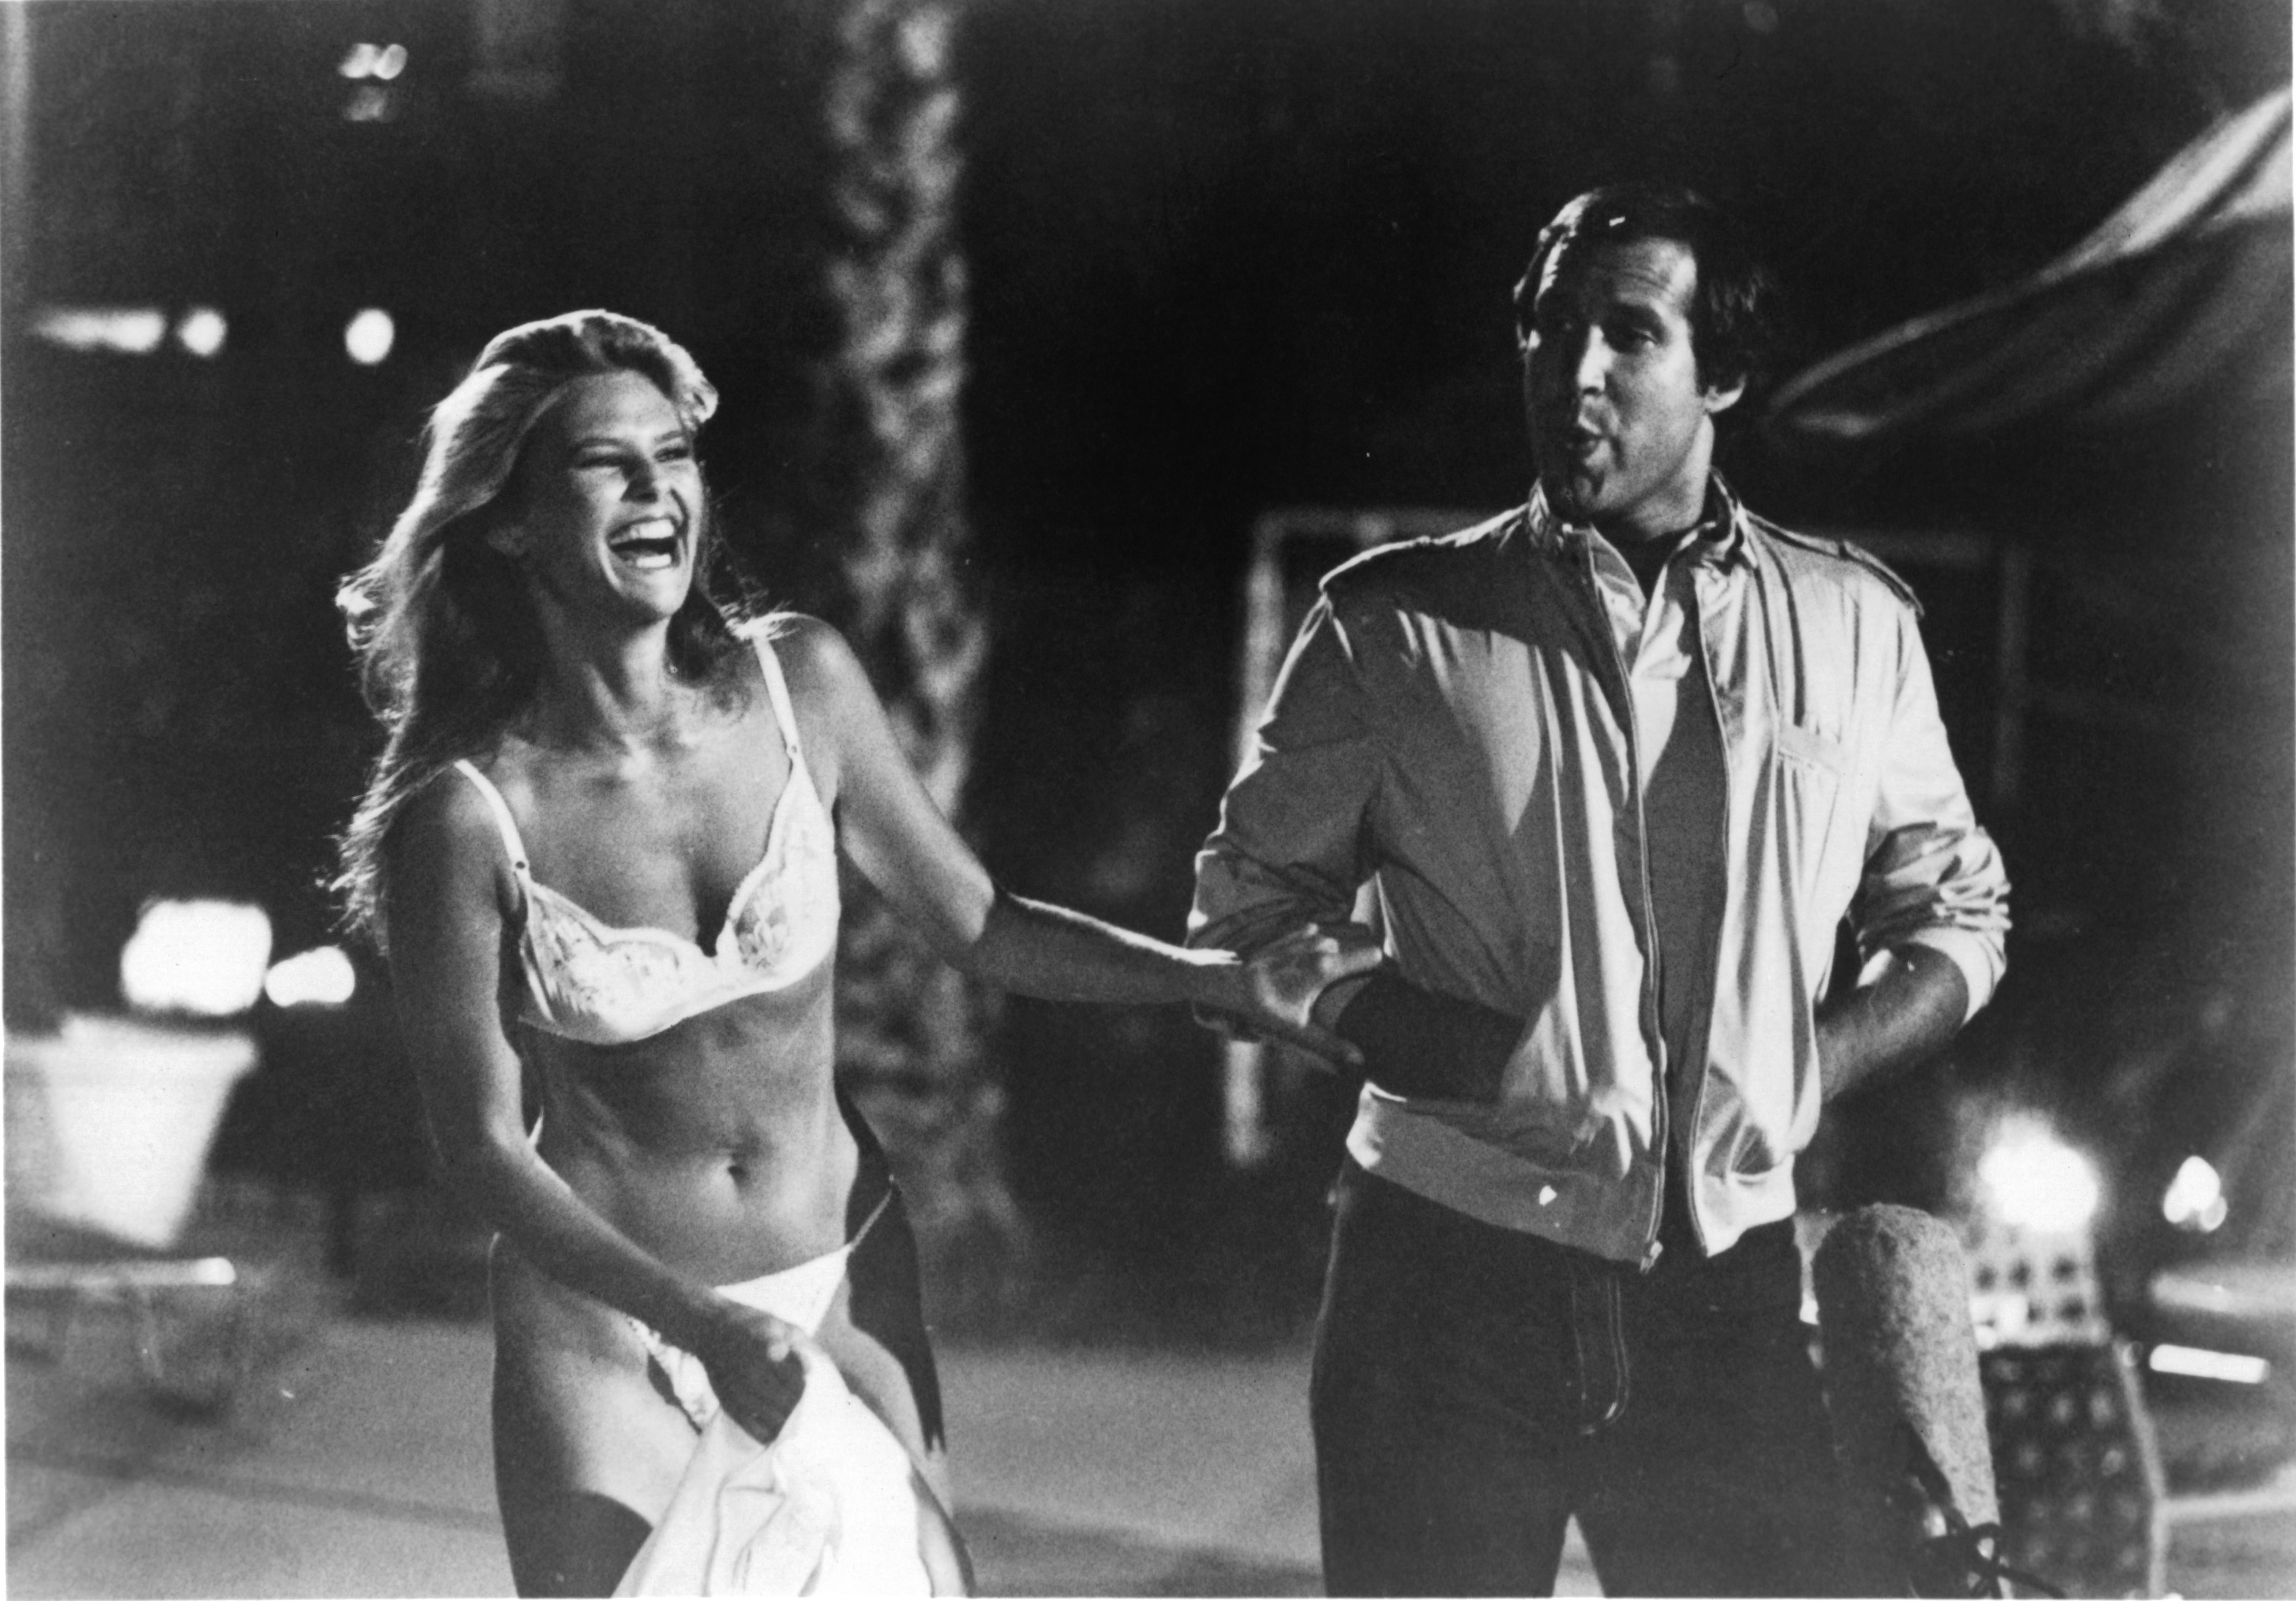 Chevy Chase and Christie Brinkley in National Lampoon's Vacation (1983)